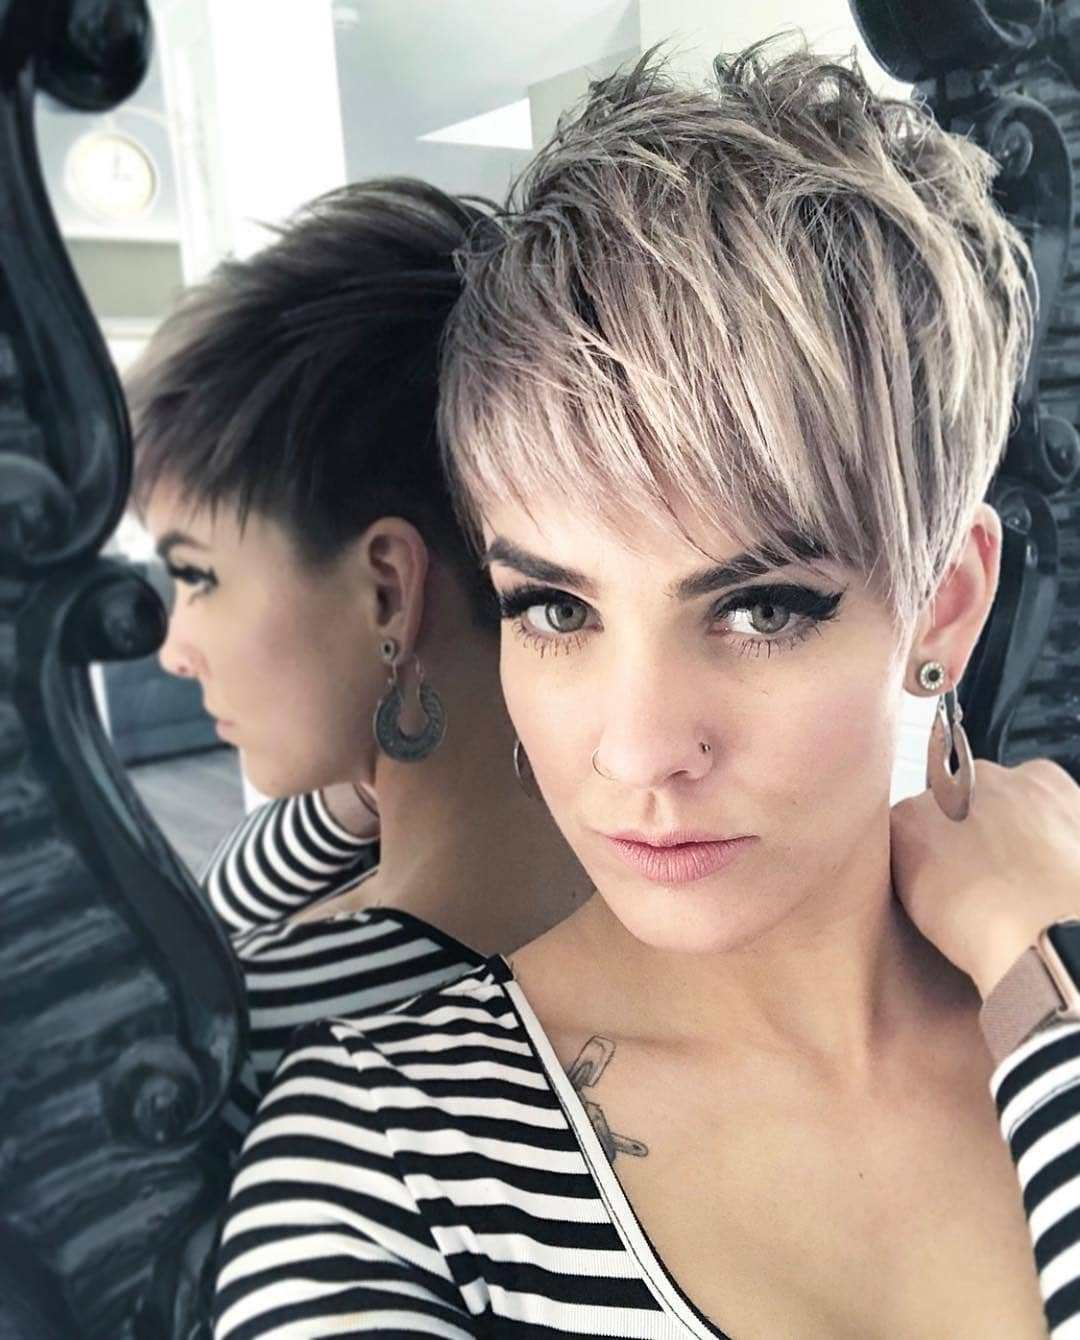 The Best Top 10 Most Flattering Pixie Haircuts For Women Short Hair Styles 2019 Pictures